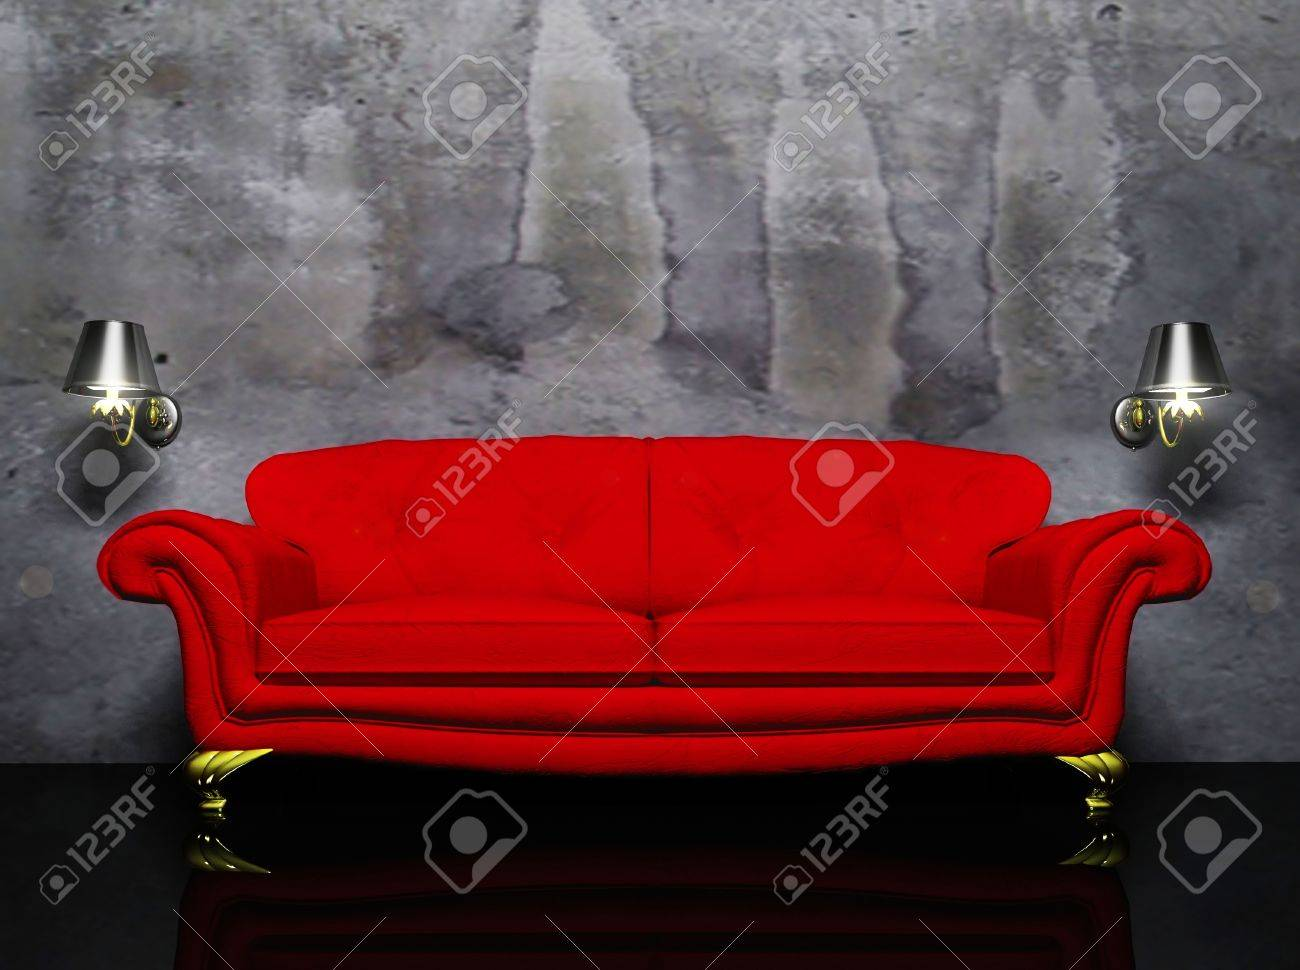 there is a red sofa and the two sconces on the dirty background Stock Photo - 12902964